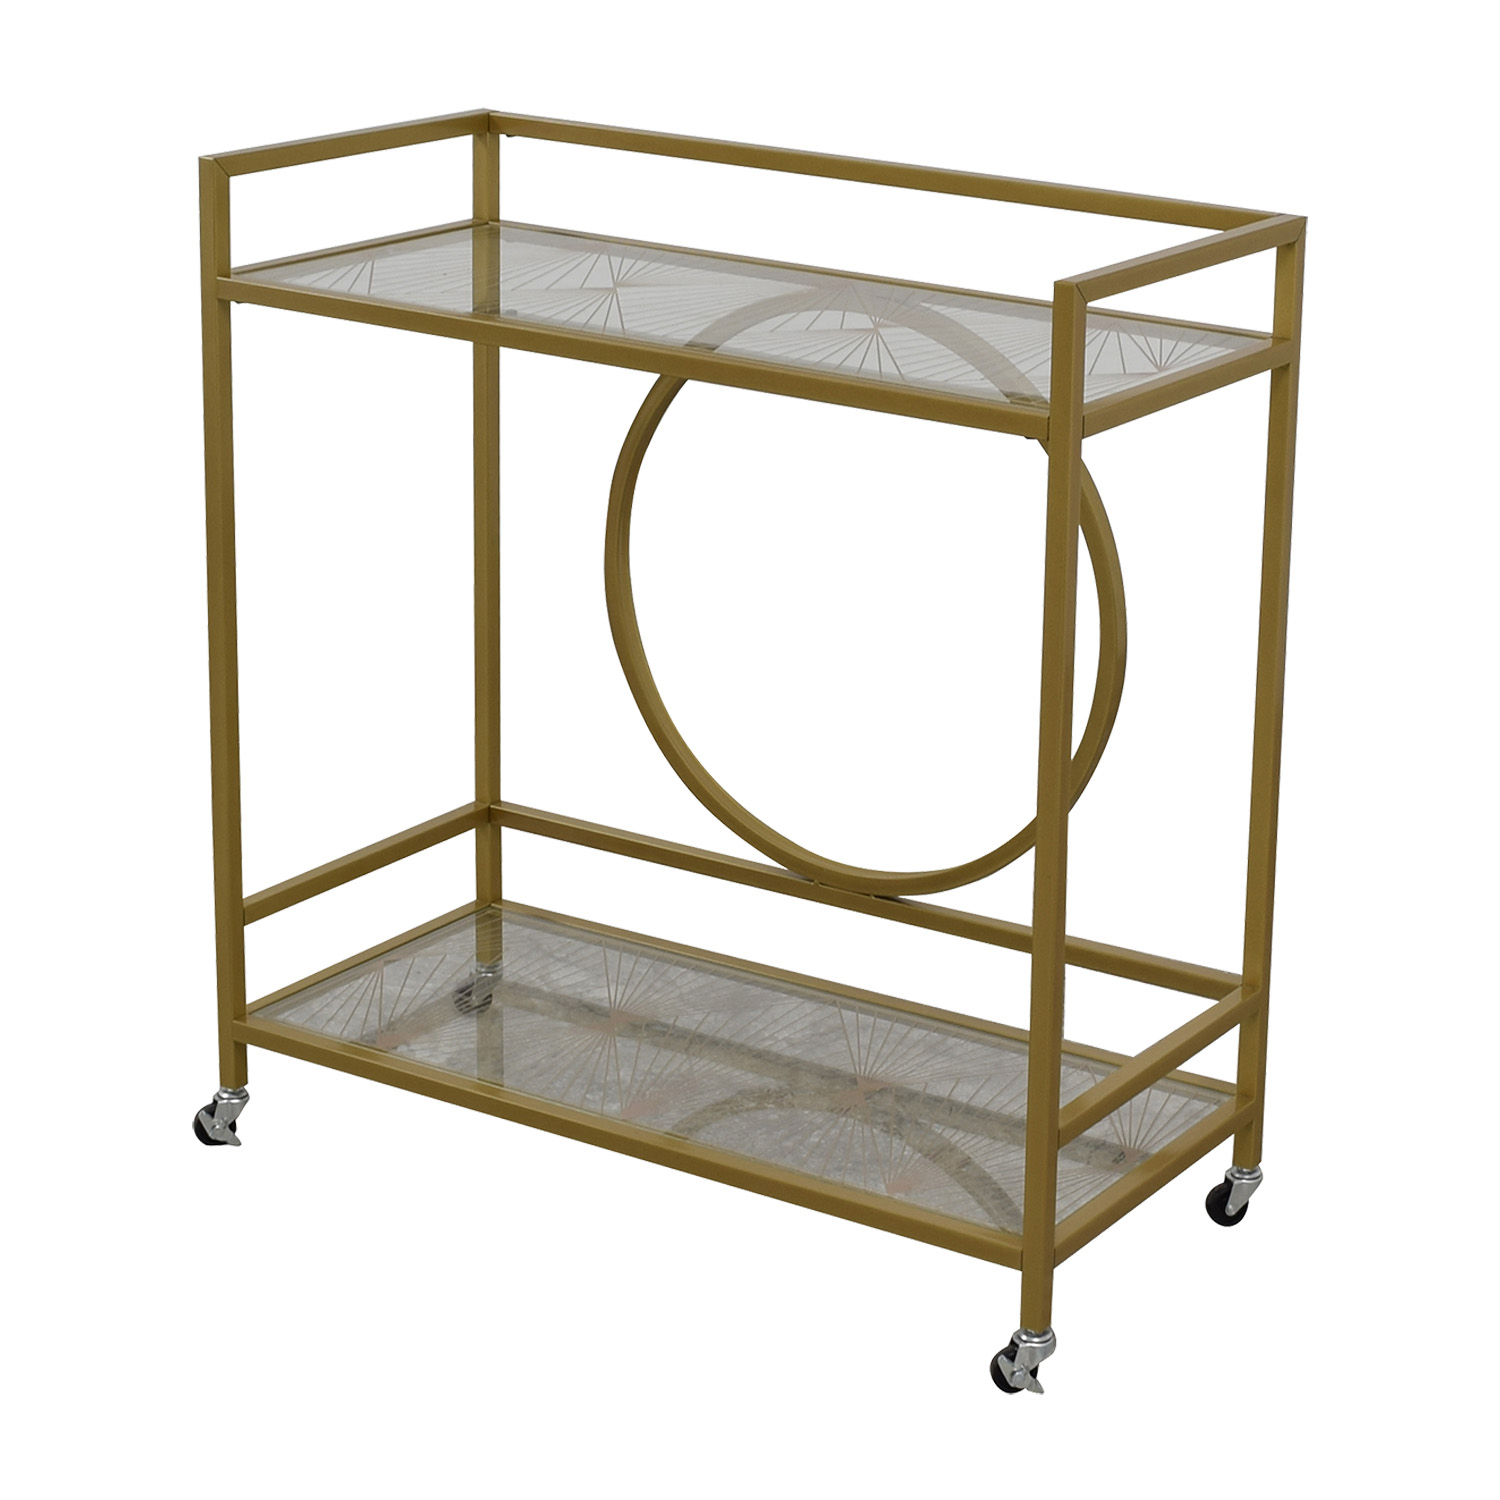 Cynmax Cynmax Sauder International Lux Bar Cart Gold